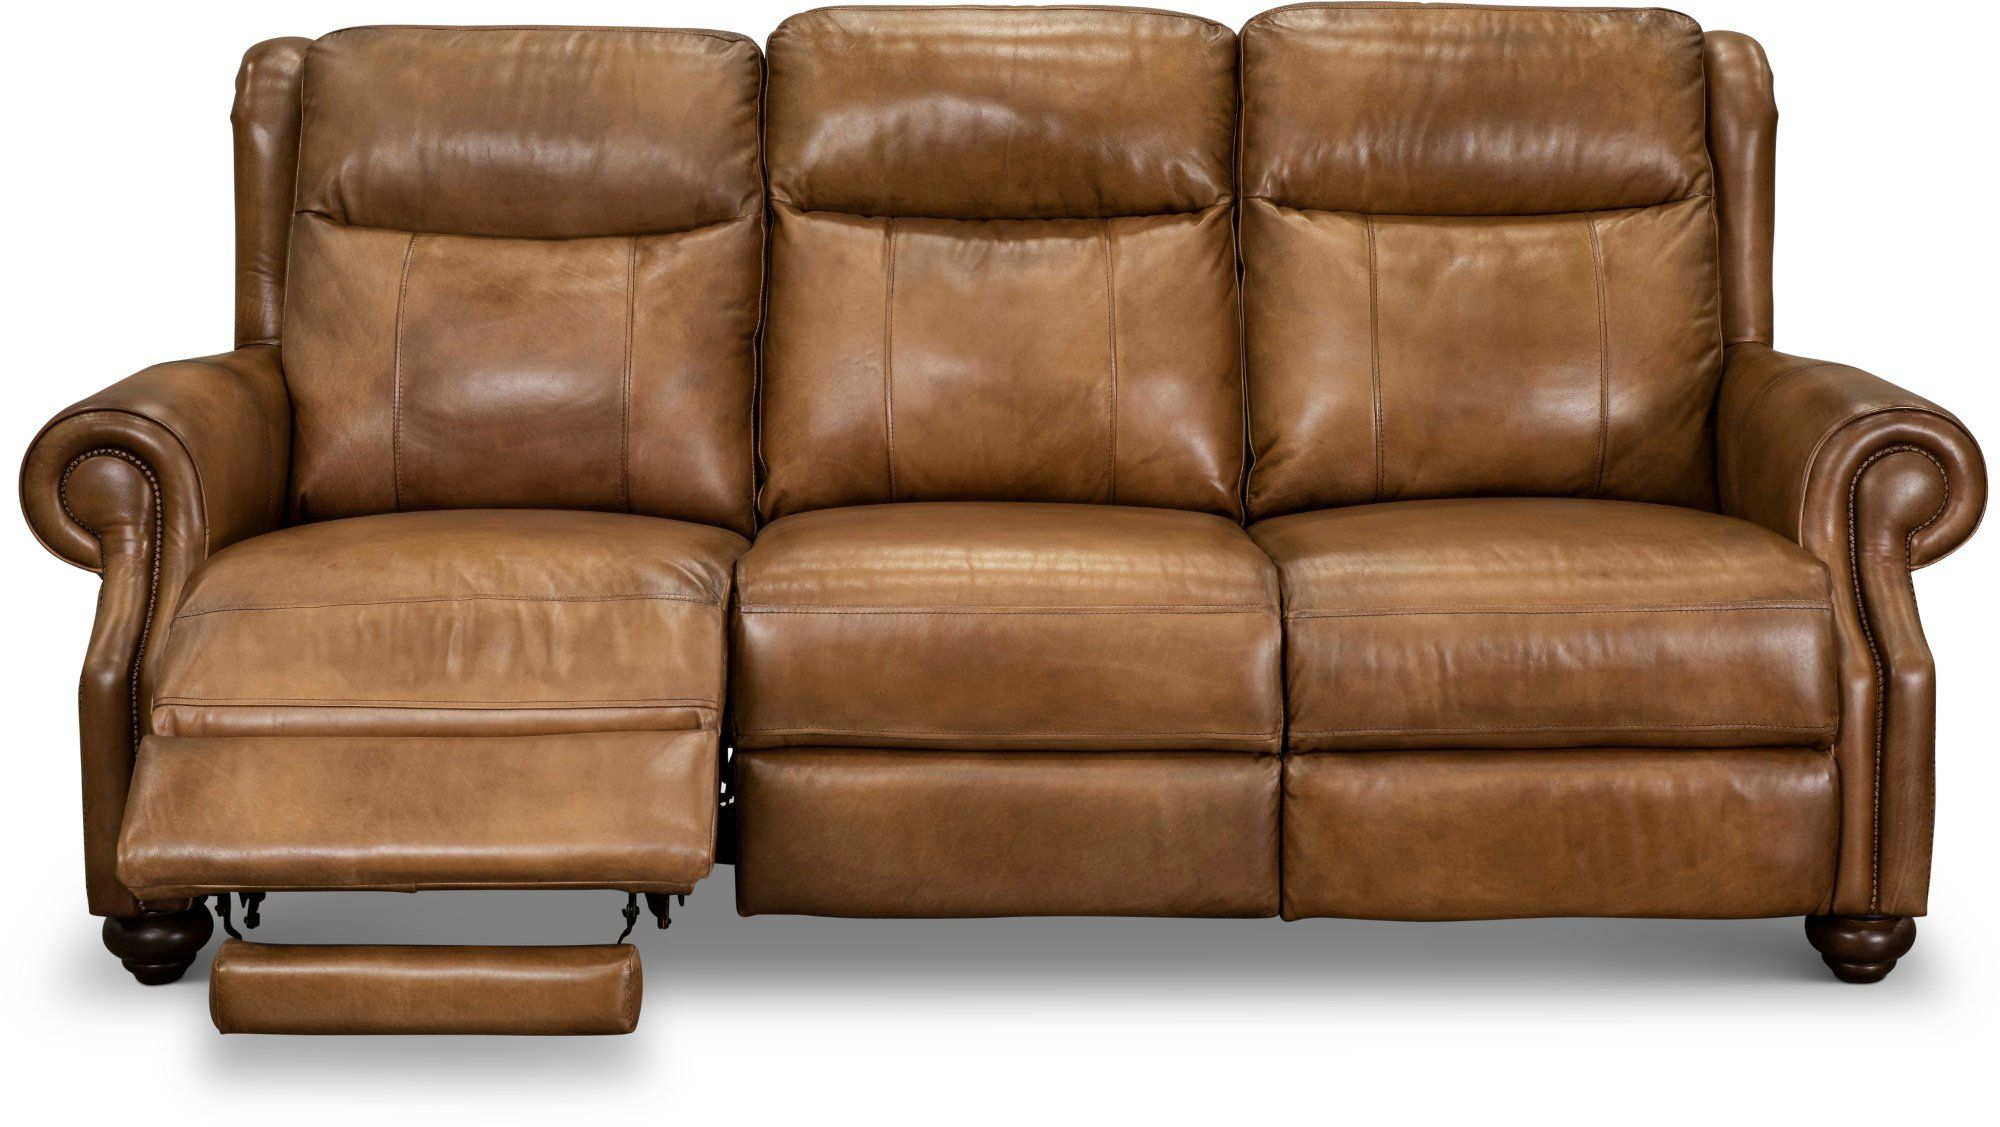 Toffee Brown Leather Power Reclining Sofa With Power Headrest